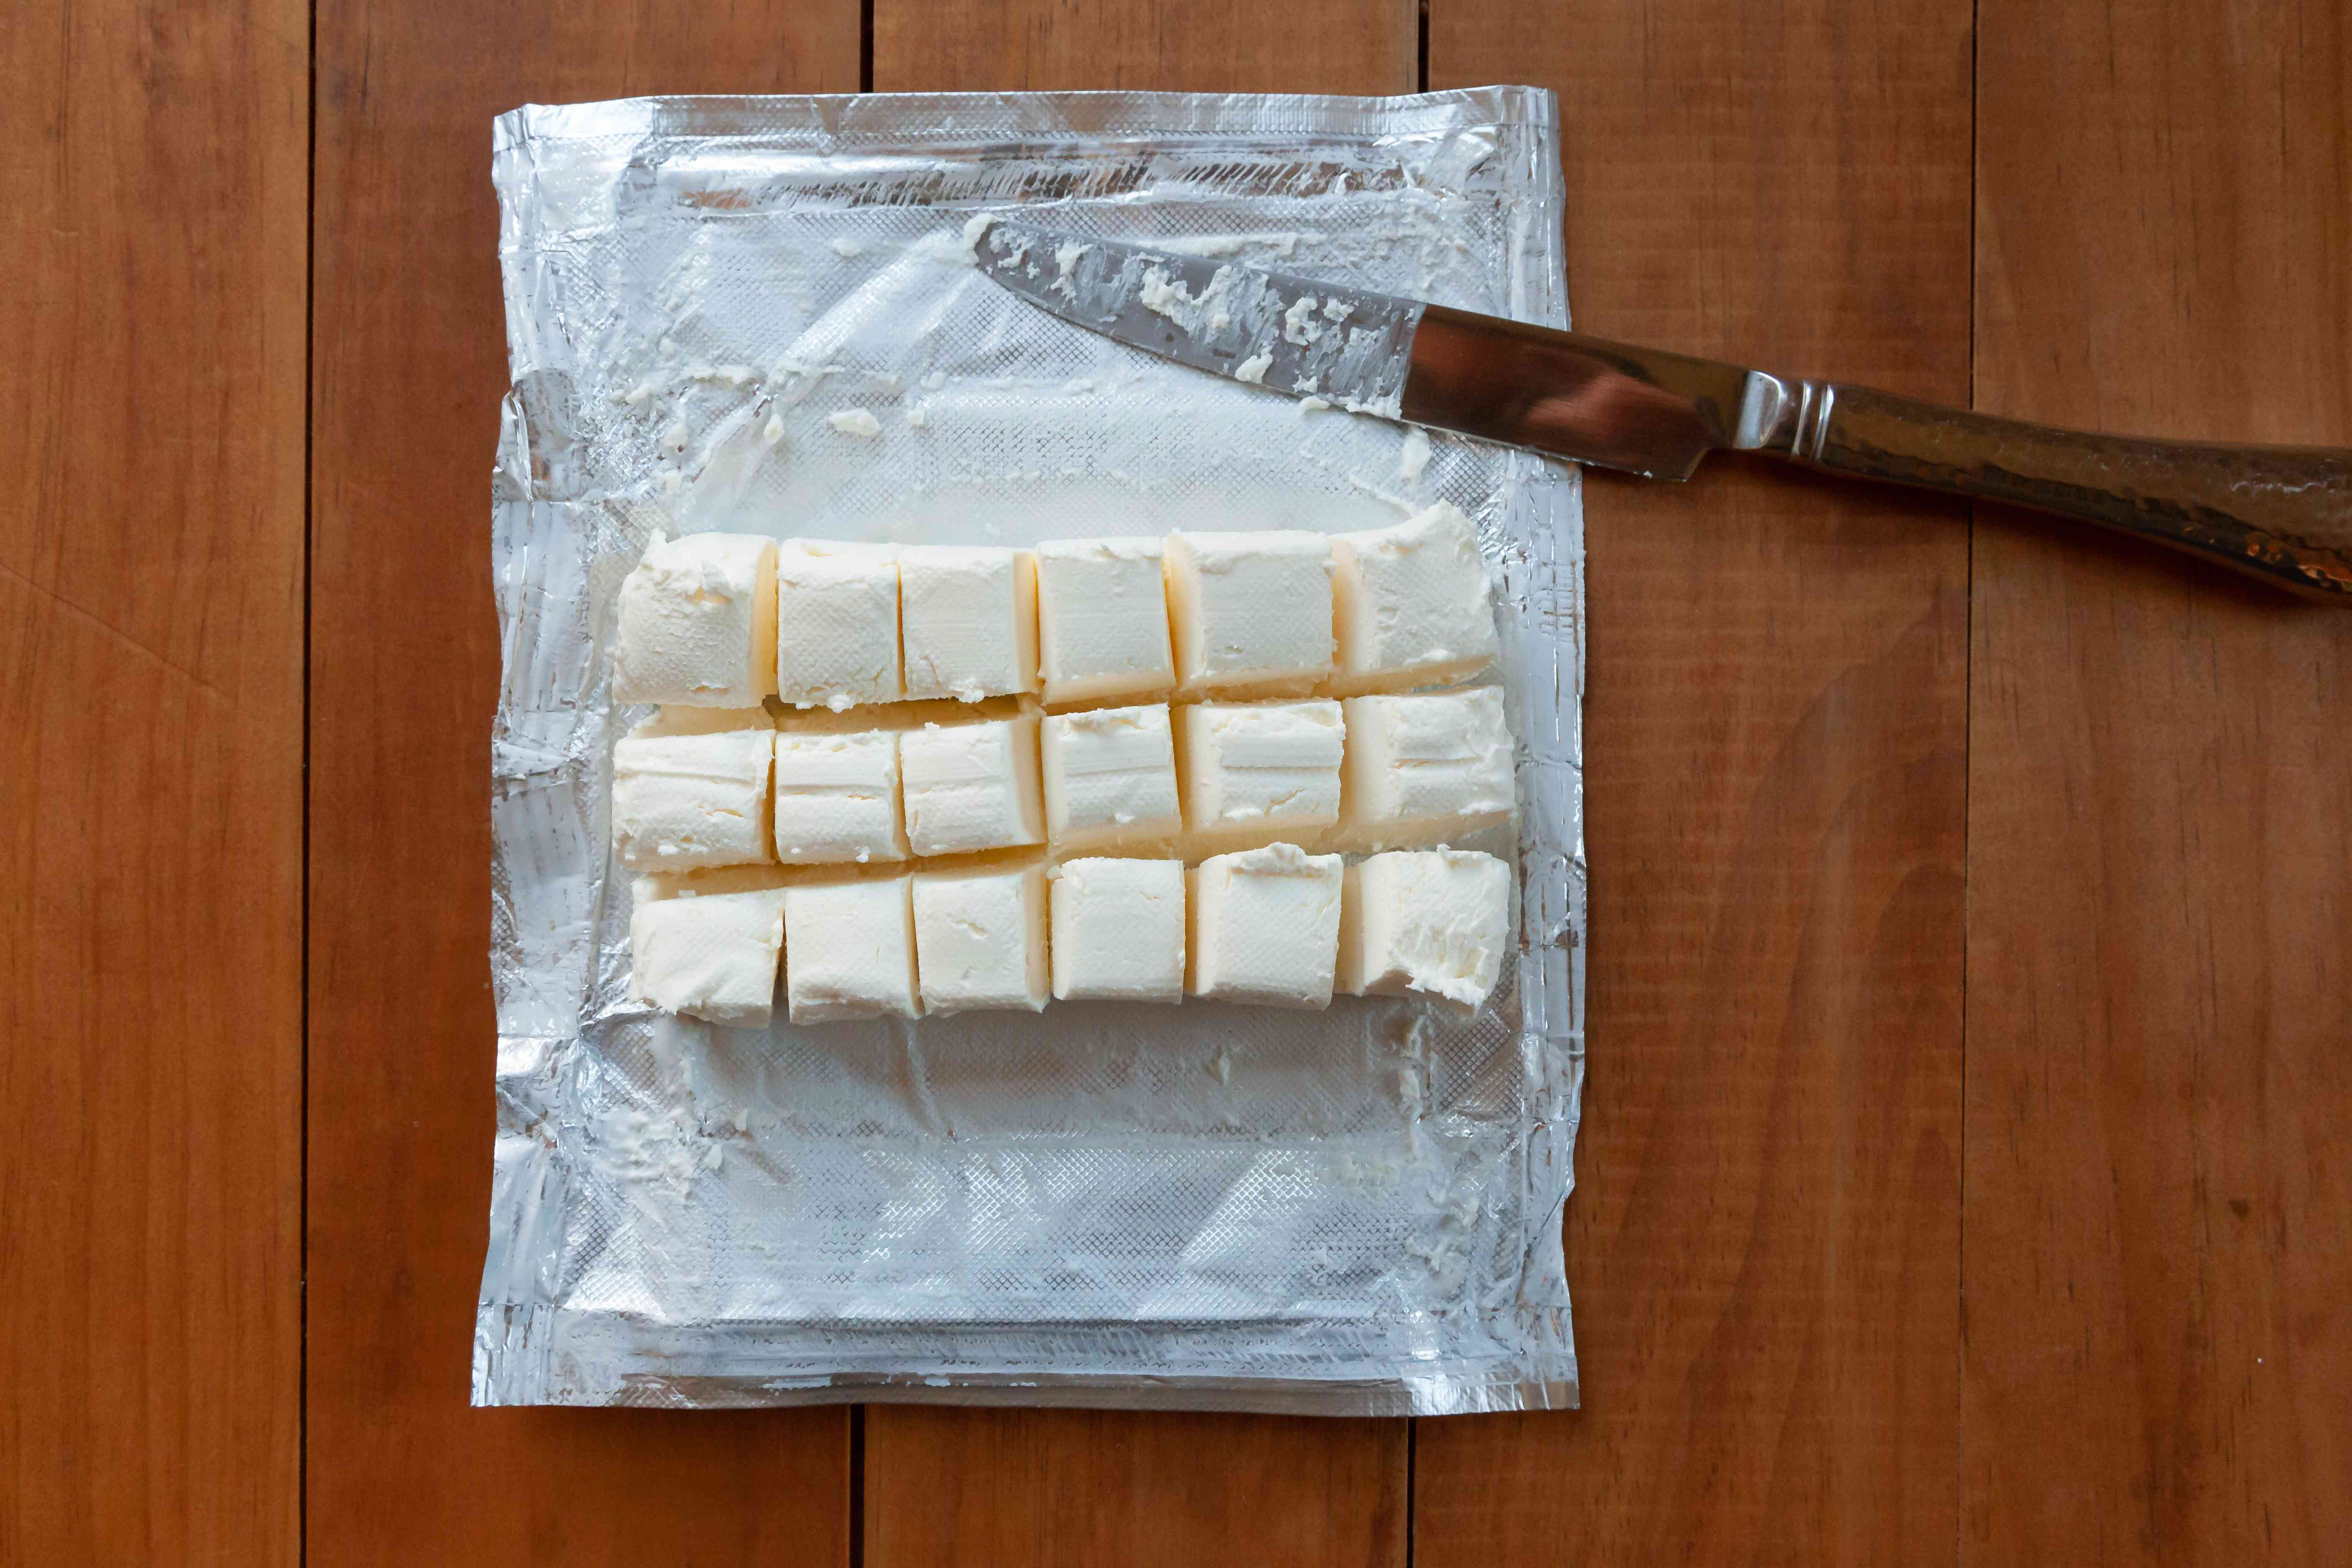 A block of cream cheese cut into squares to make a whipped cream frosting recipe.